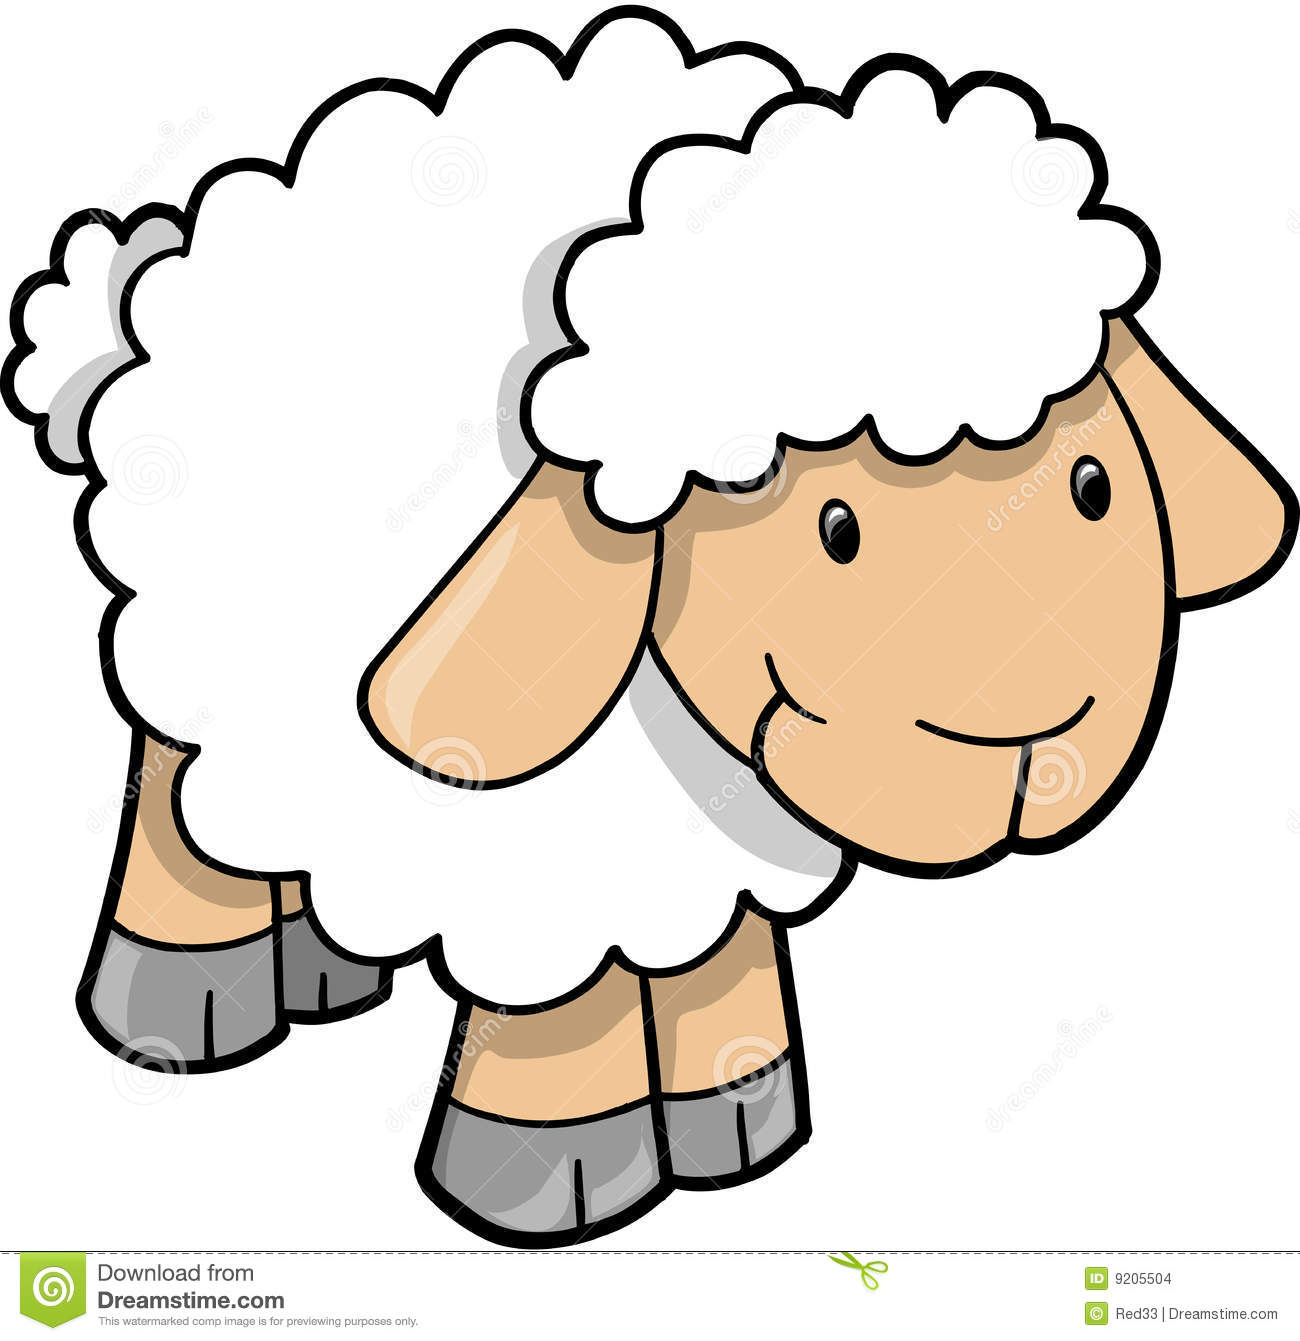 Sheep clipart #5, Download drawings